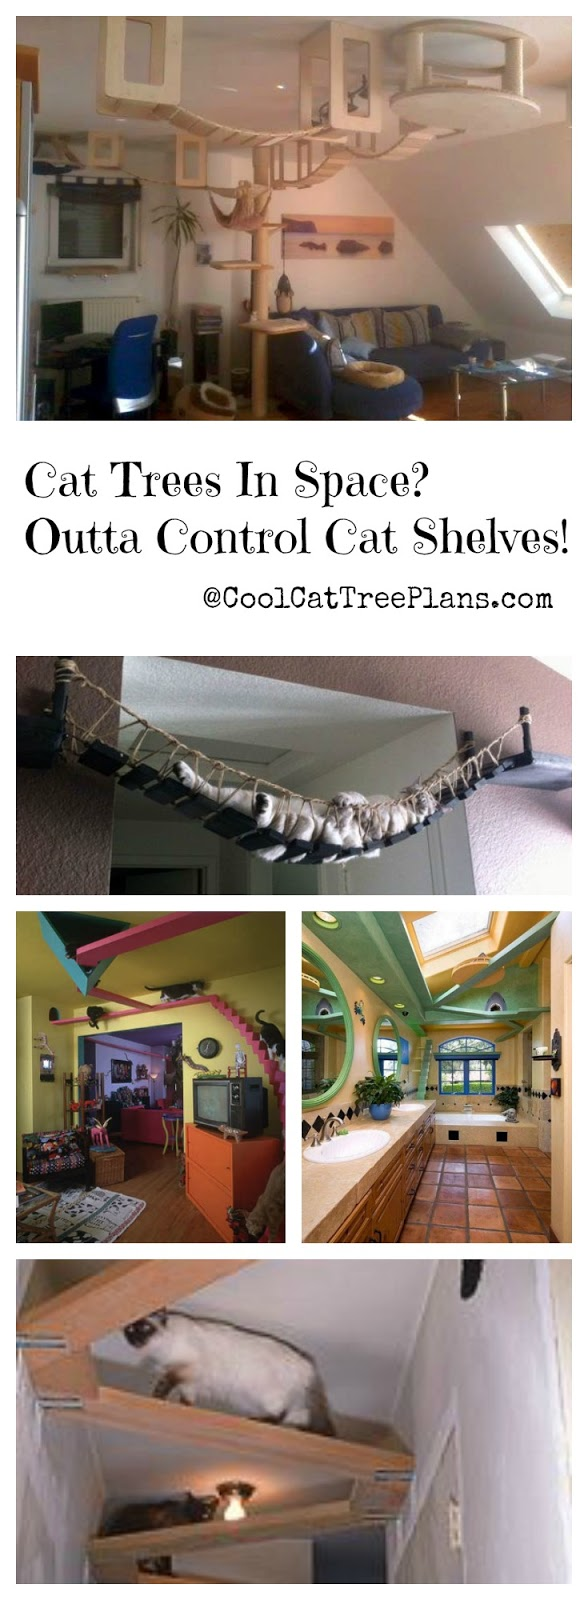 ♥ Cool Cat Stuff ♥ Build a cat gym on your celing with cat shelves. The cat tree is how the cats get up to it.